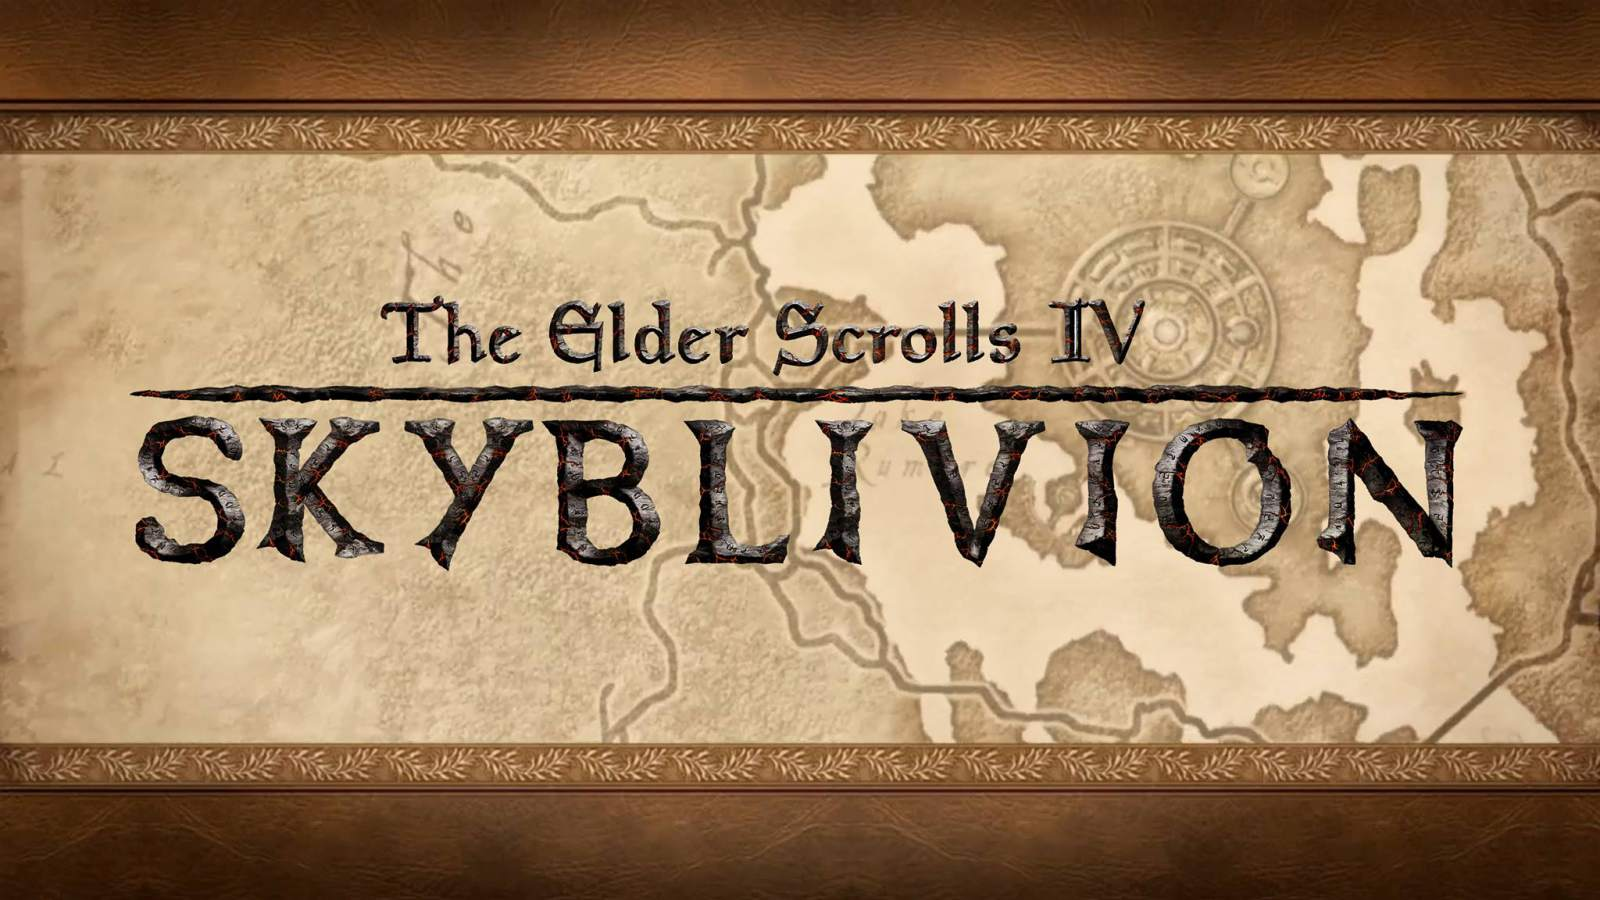 The Elder Scrolls V: Skyblivion